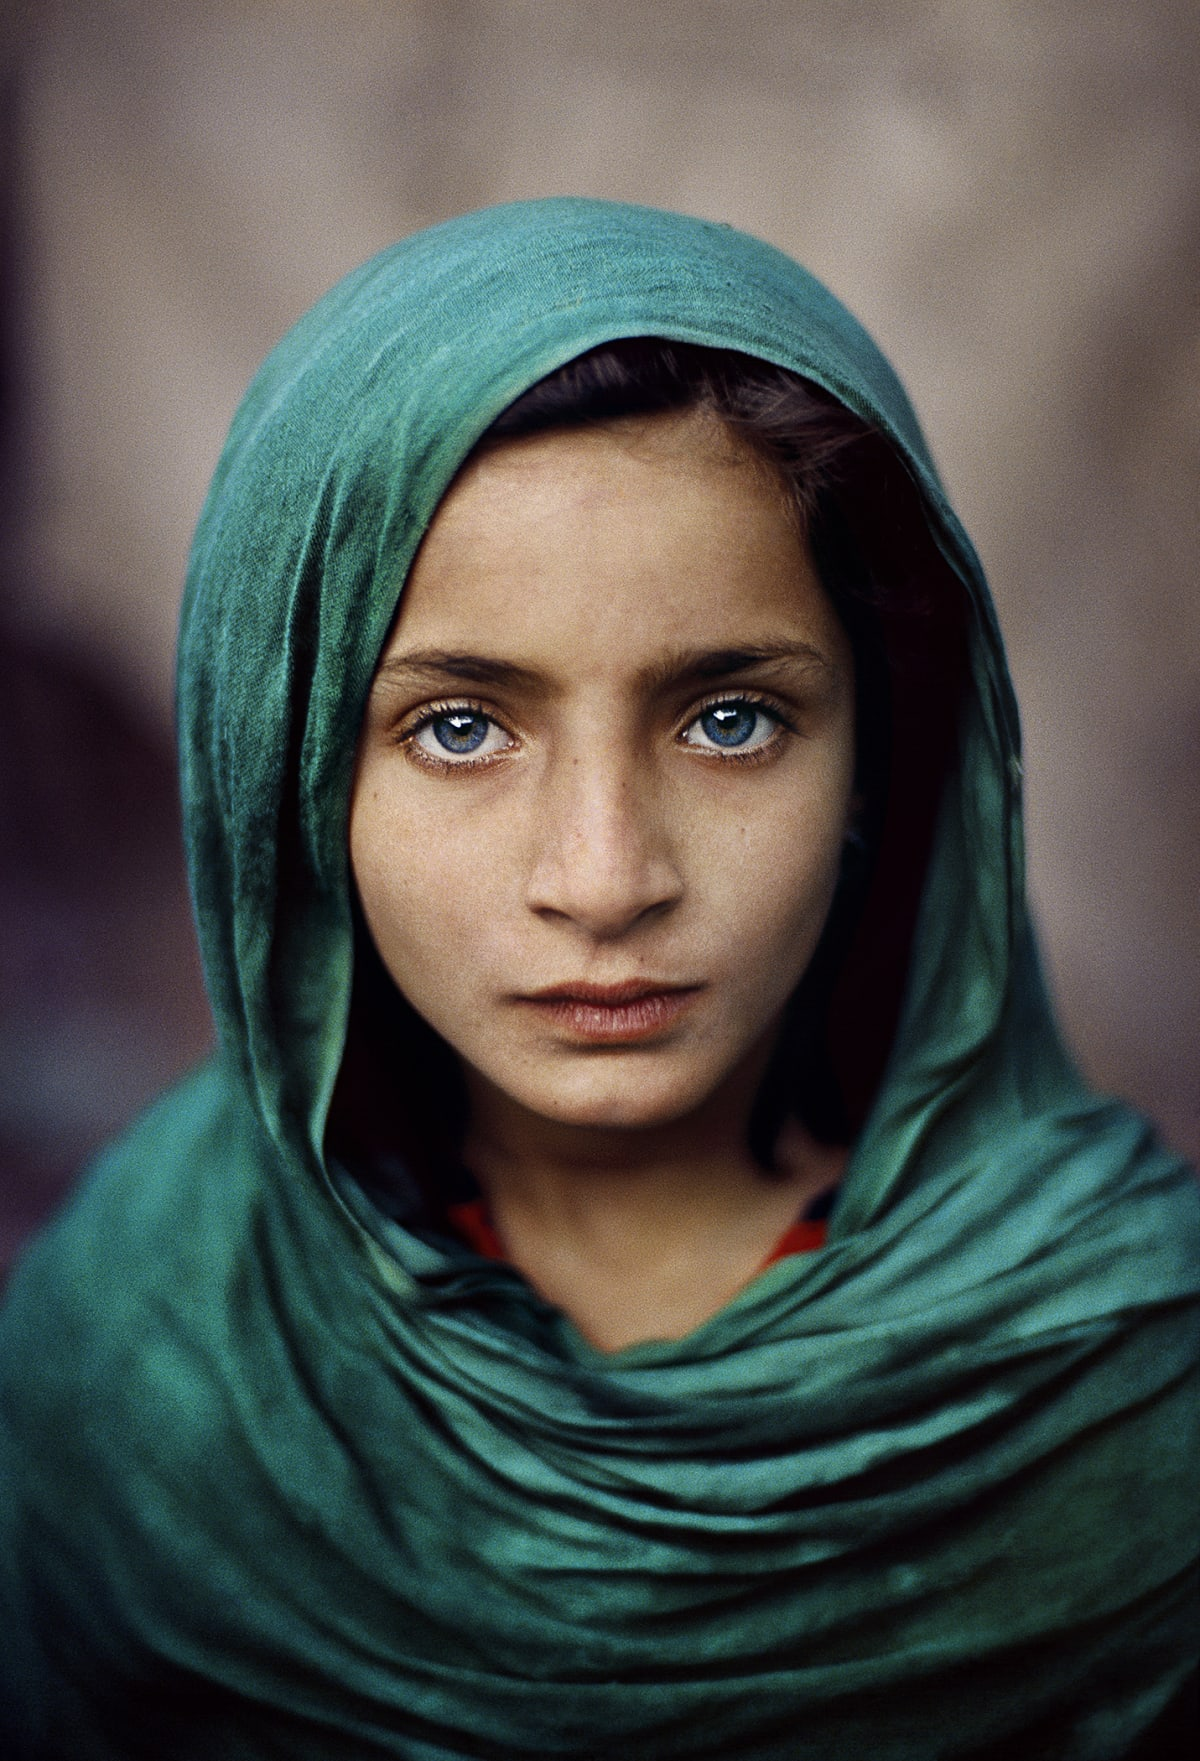 Afghan Girl with Green Shawl, 2002